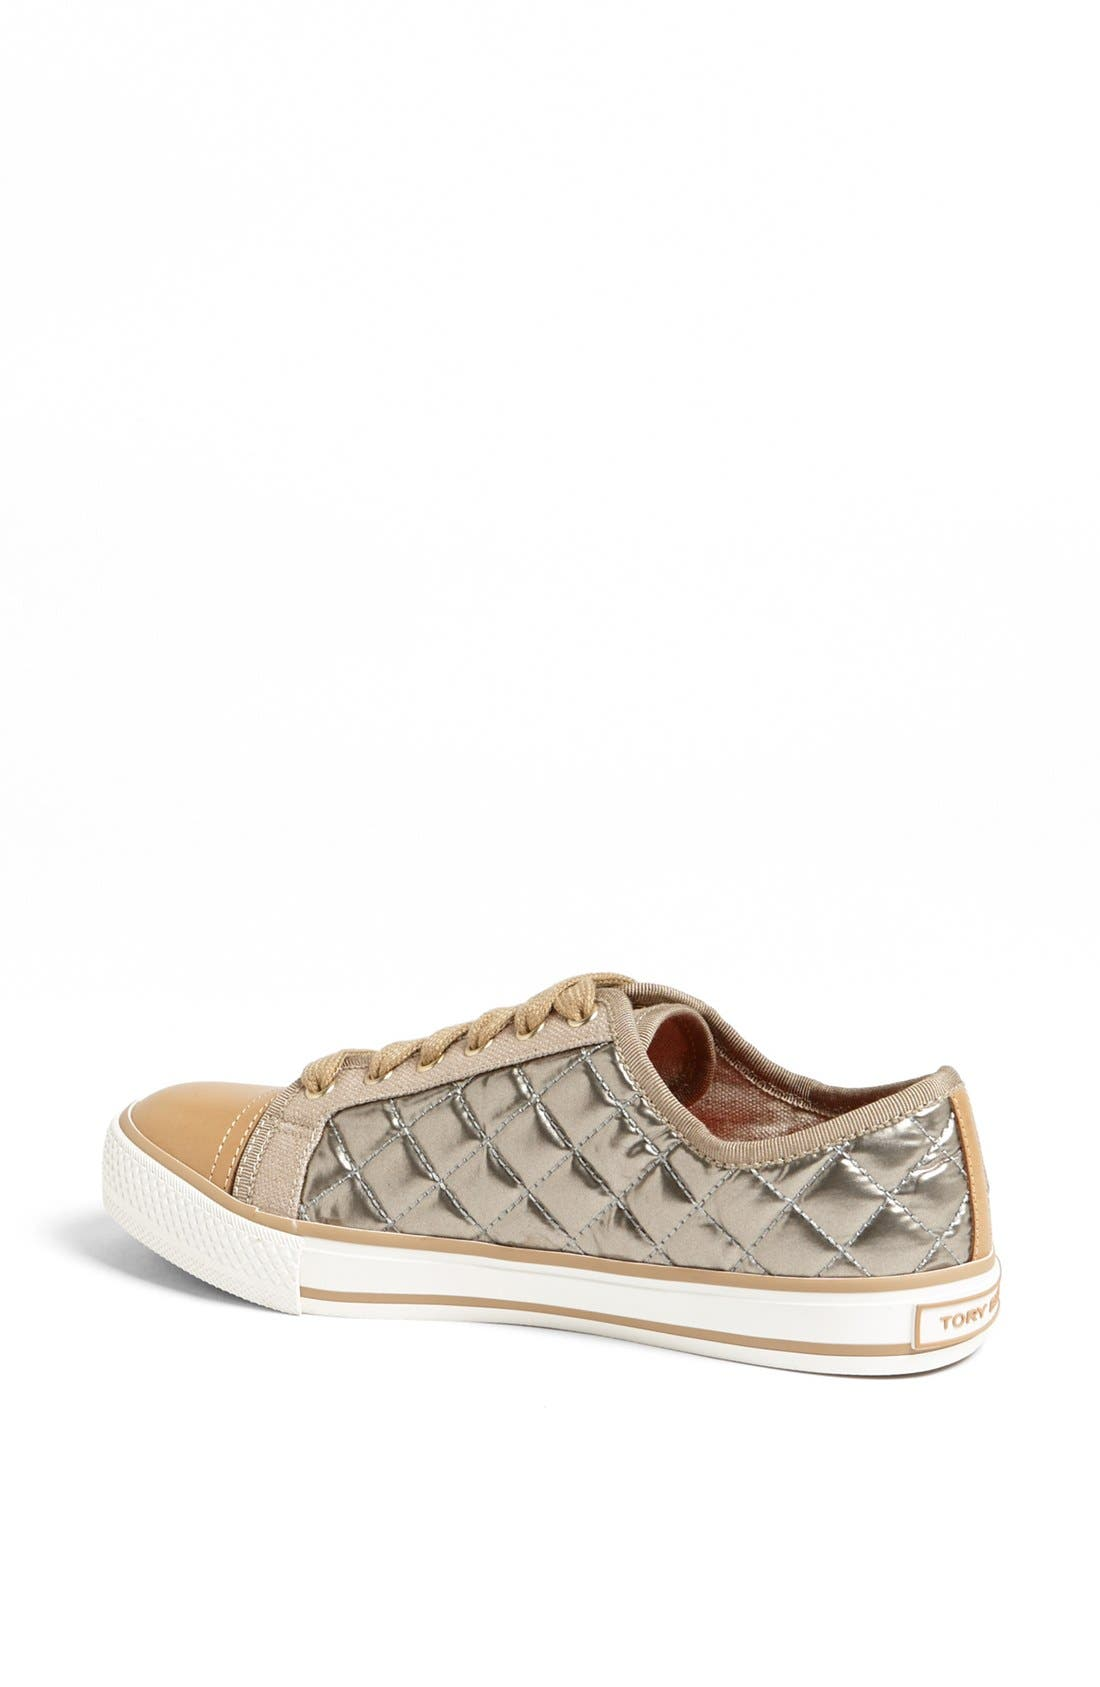 Alternate Image 2  - Tory Burch 'Caspe' Quilted Metallic Leather Sneaker